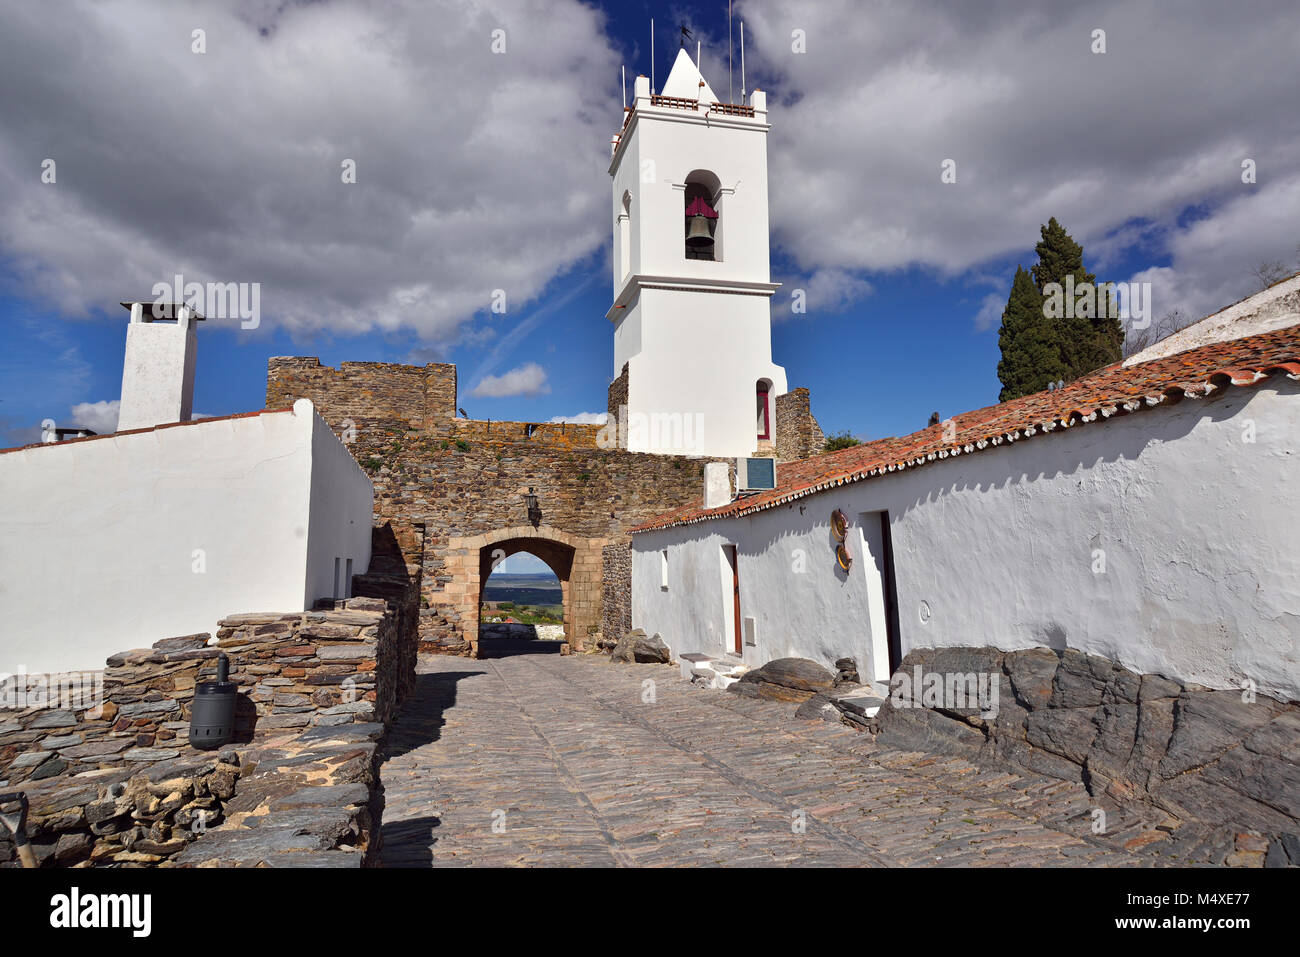 Medieval stone paved alley with white washed houses and bell tower - Stock Image